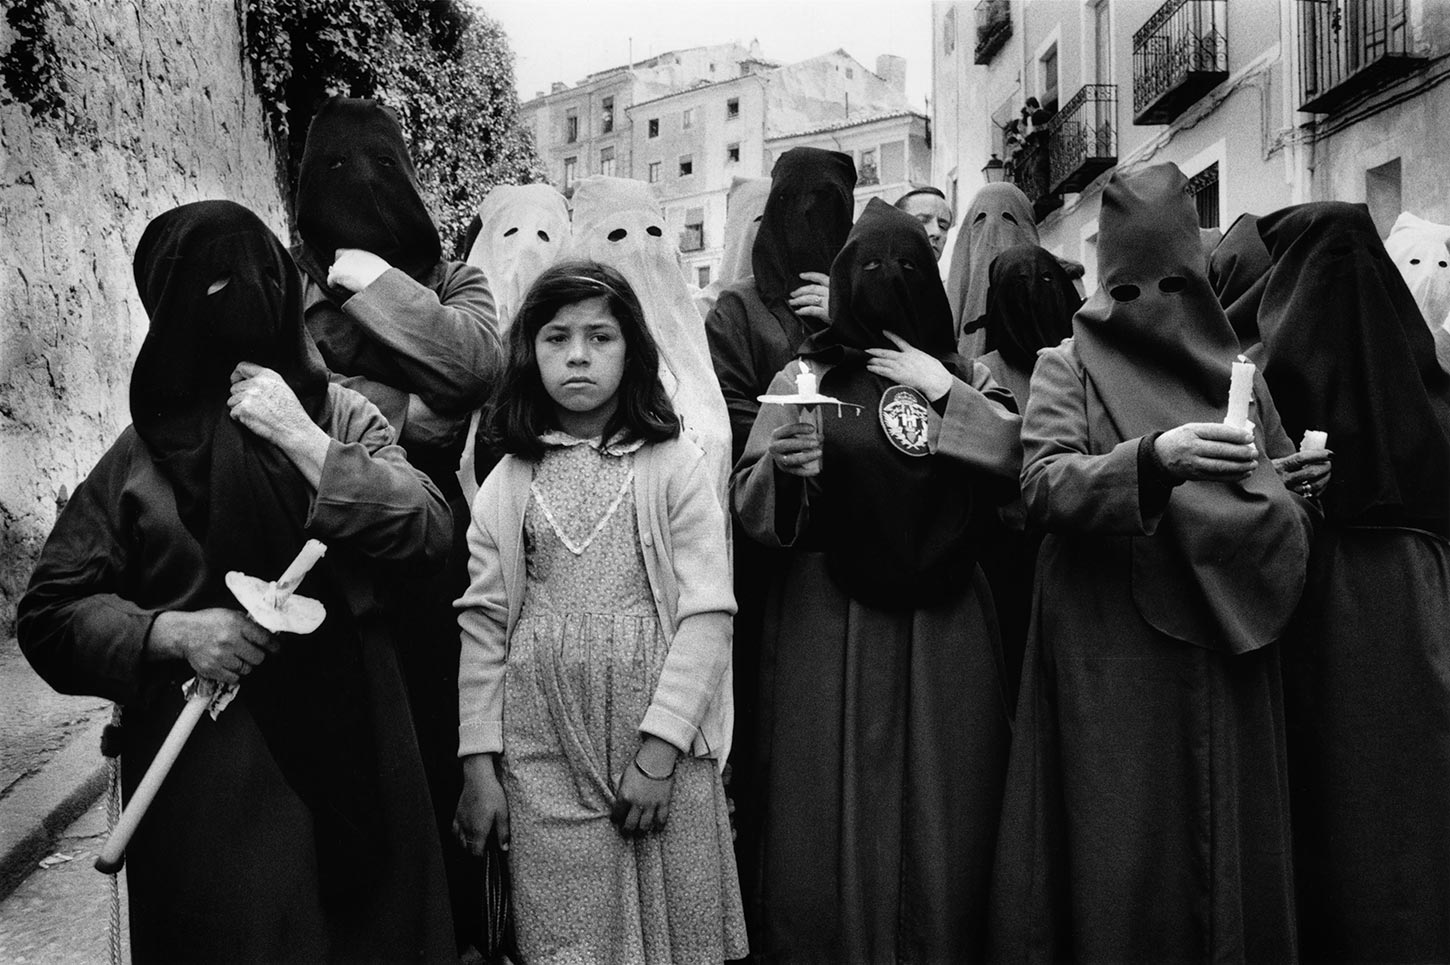 The penitent girl. Cuenca, Spain. 1982.